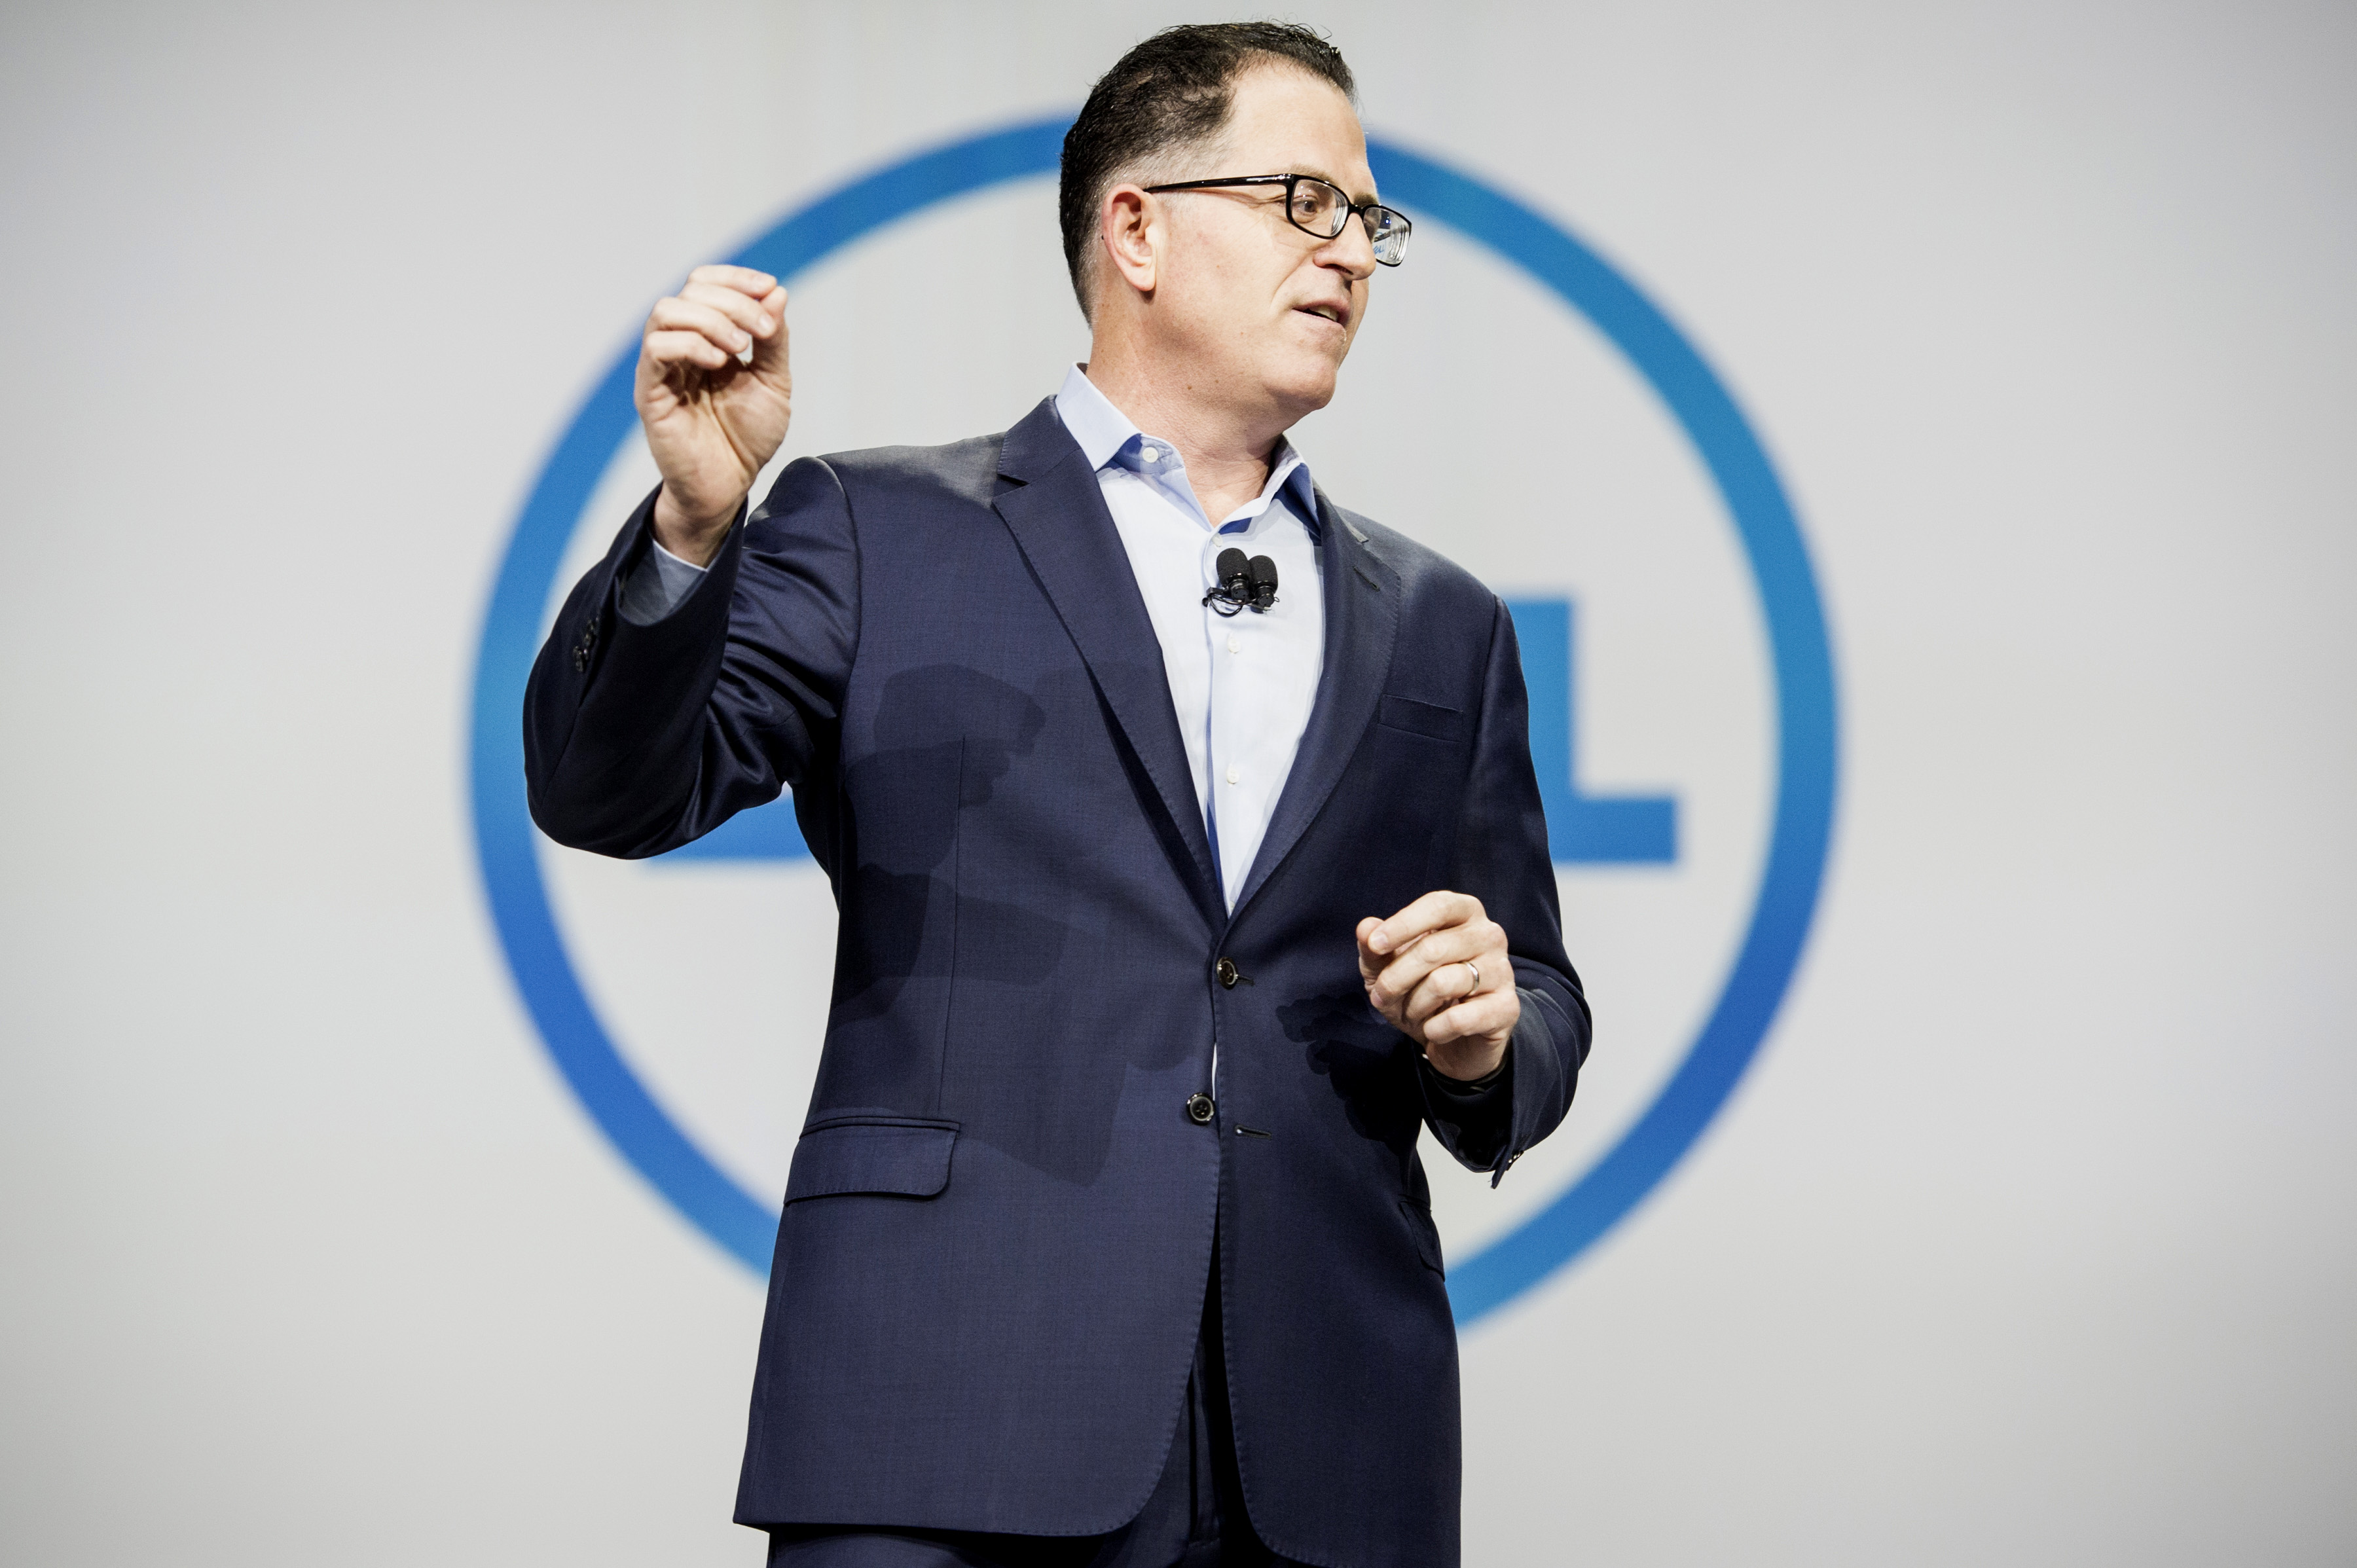 Key Speakers At The 2015 Dell World Conference